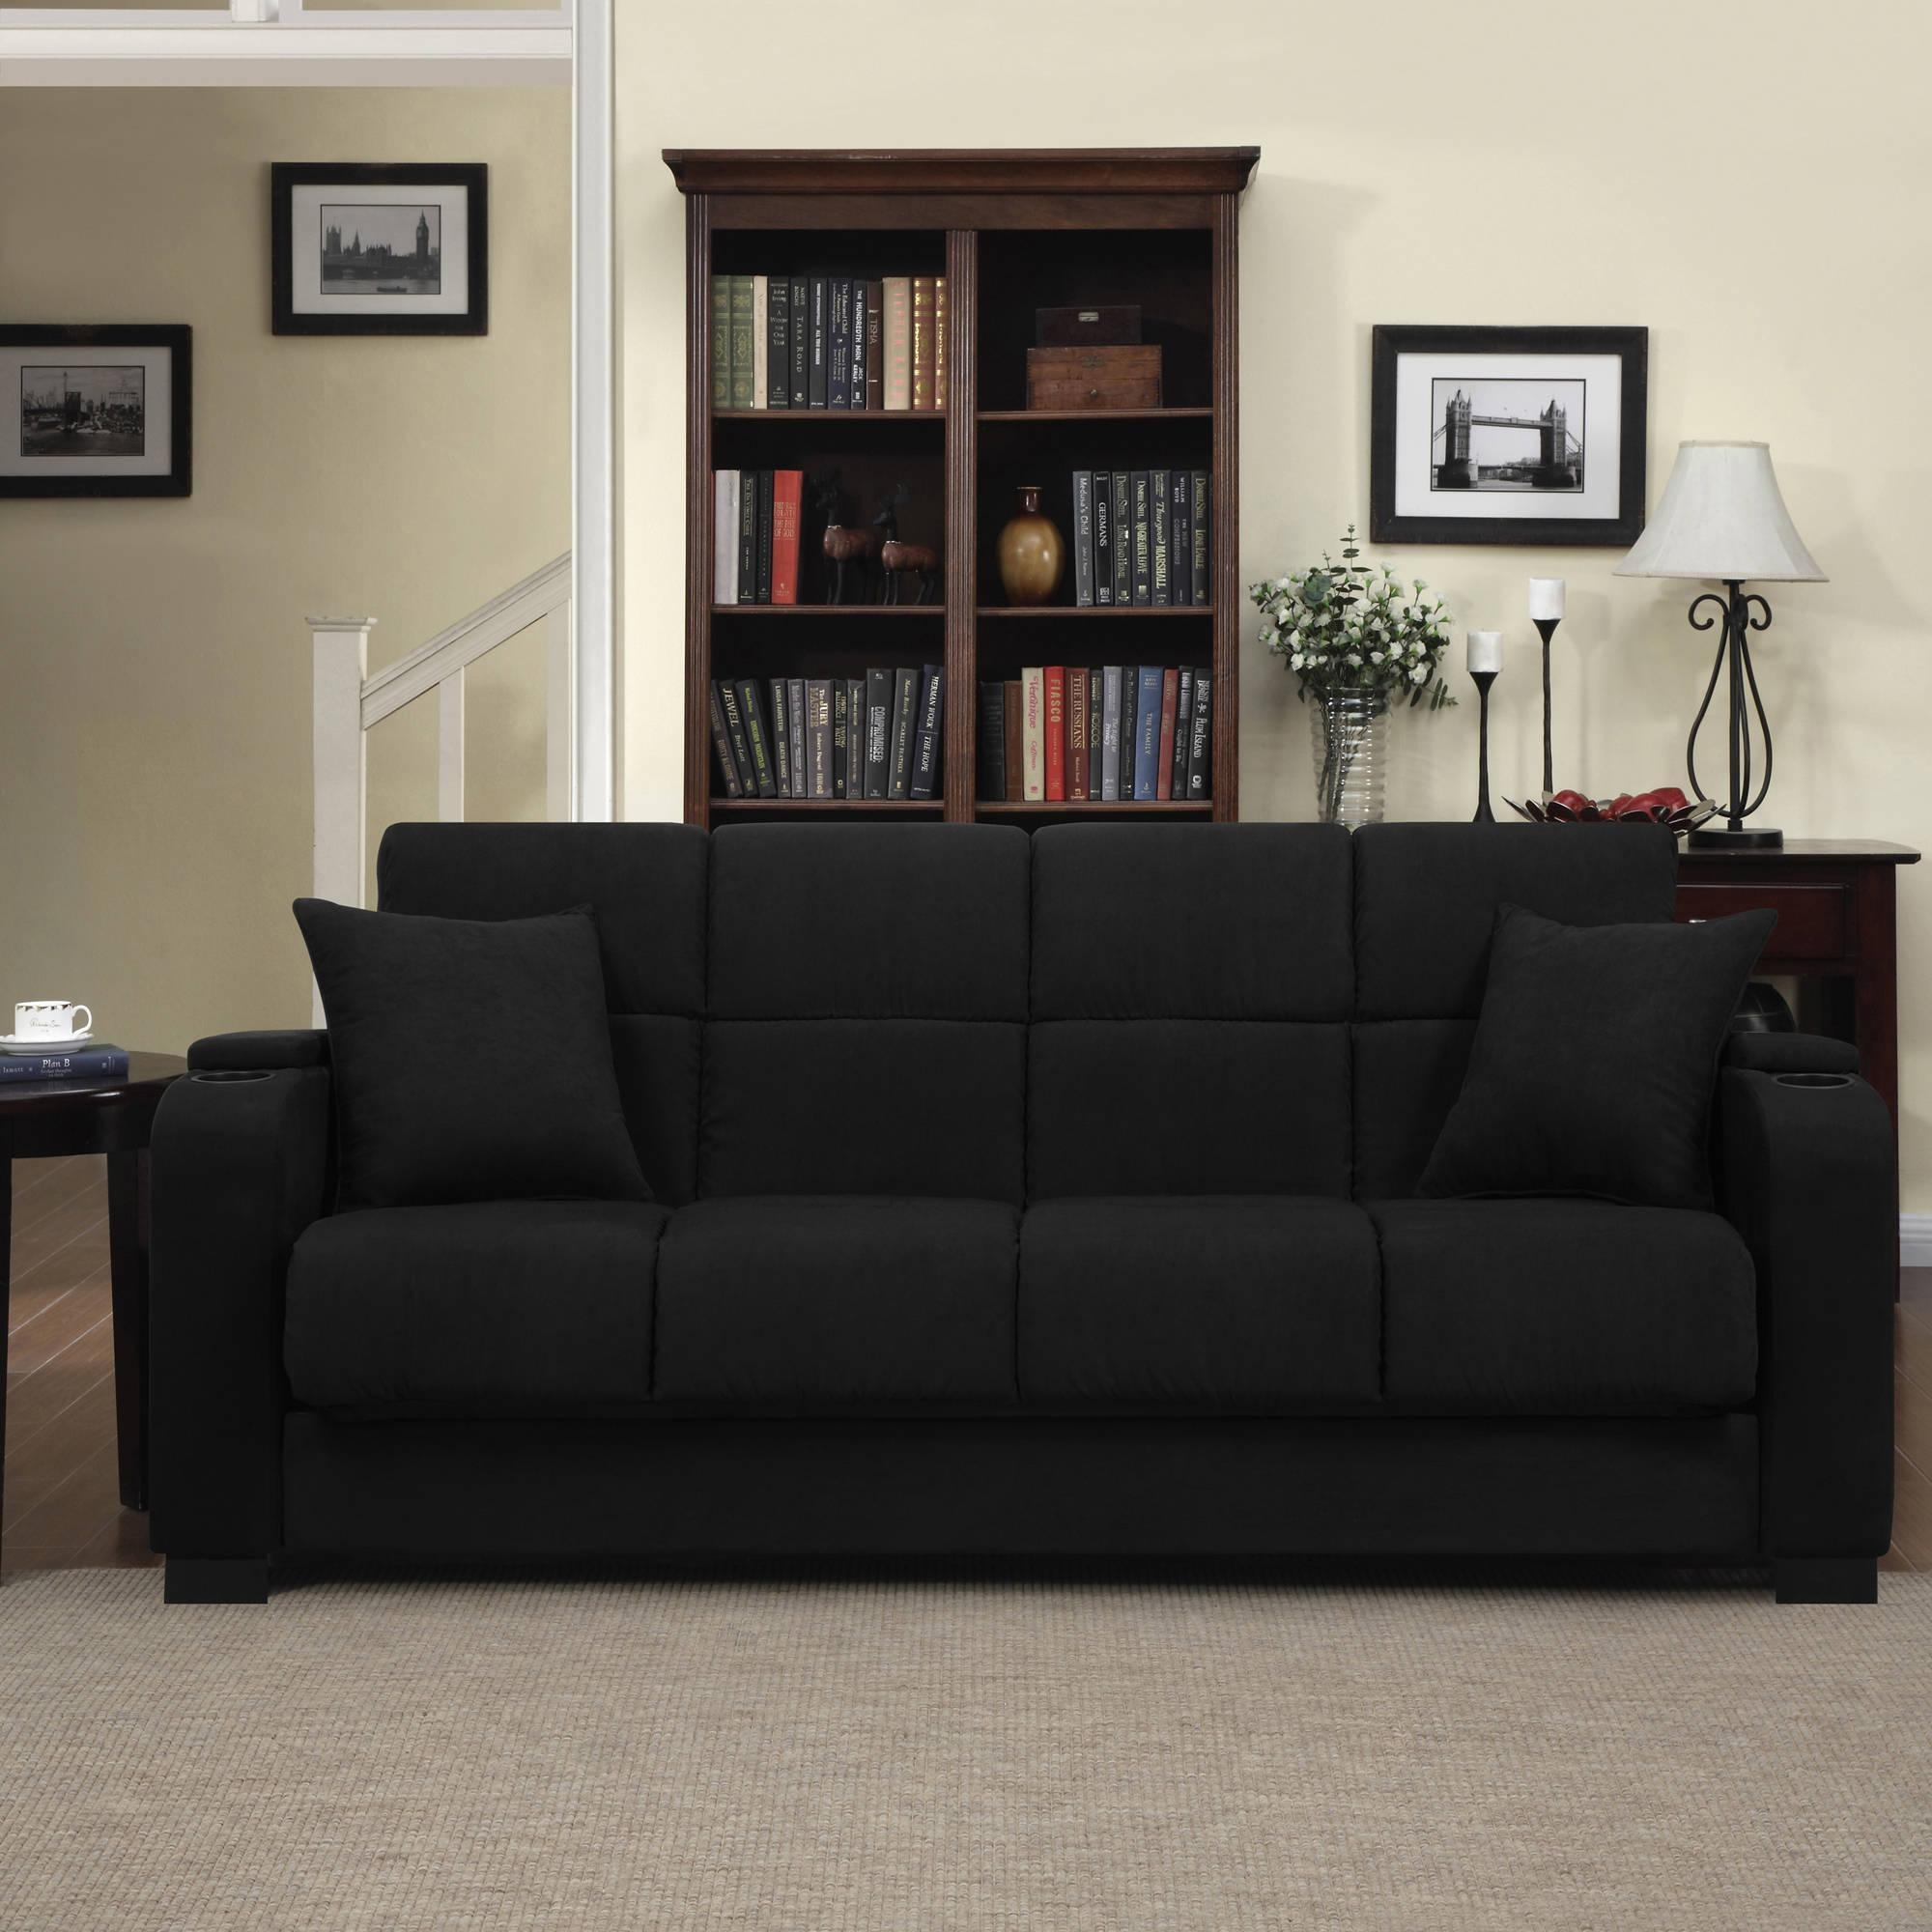 Furniture: Couch Covers At Walmart To Make Your Furniture Stylish Within Sofas With Black Cover (Image 9 of 20)